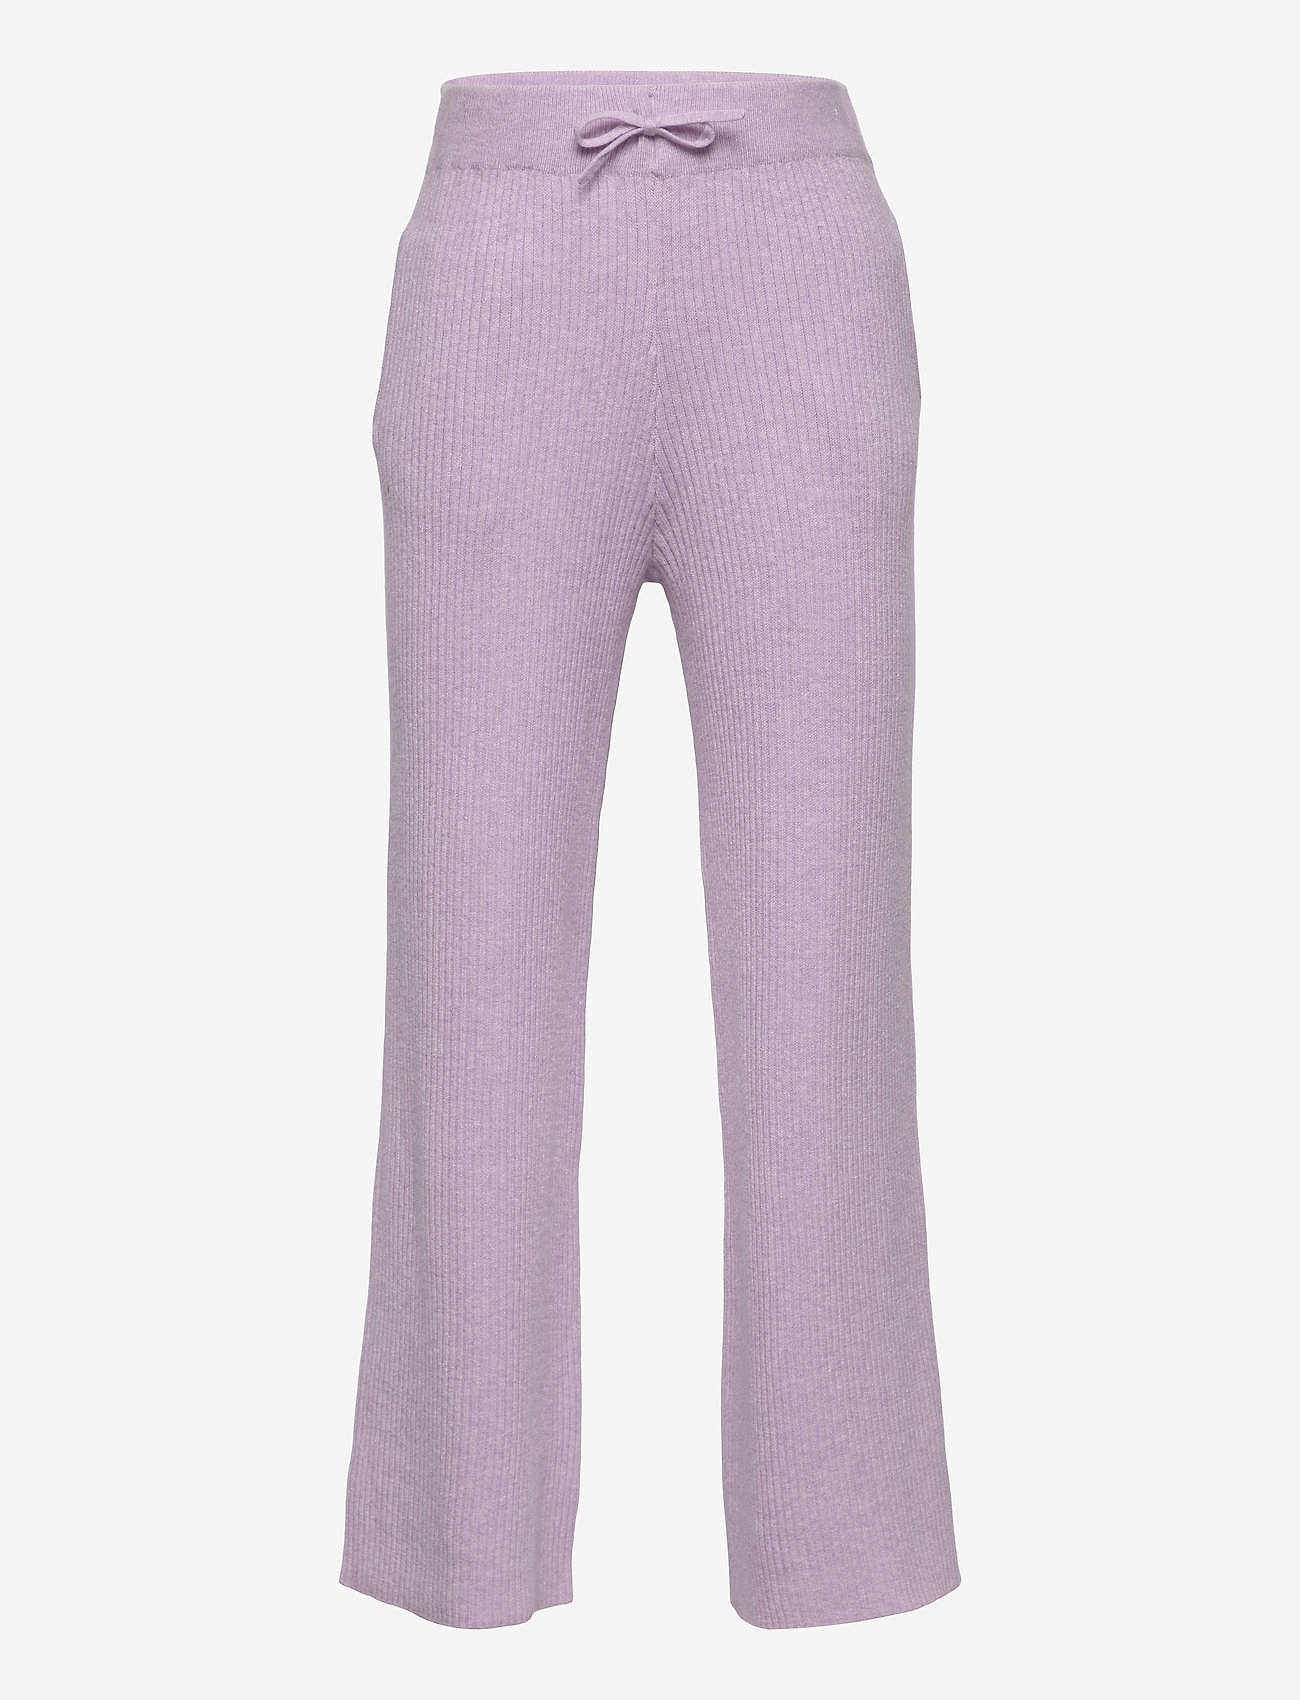 Kids Only - KONFLORELLE  LIFE PANT KNT - kleidung - orchid bloom - 0